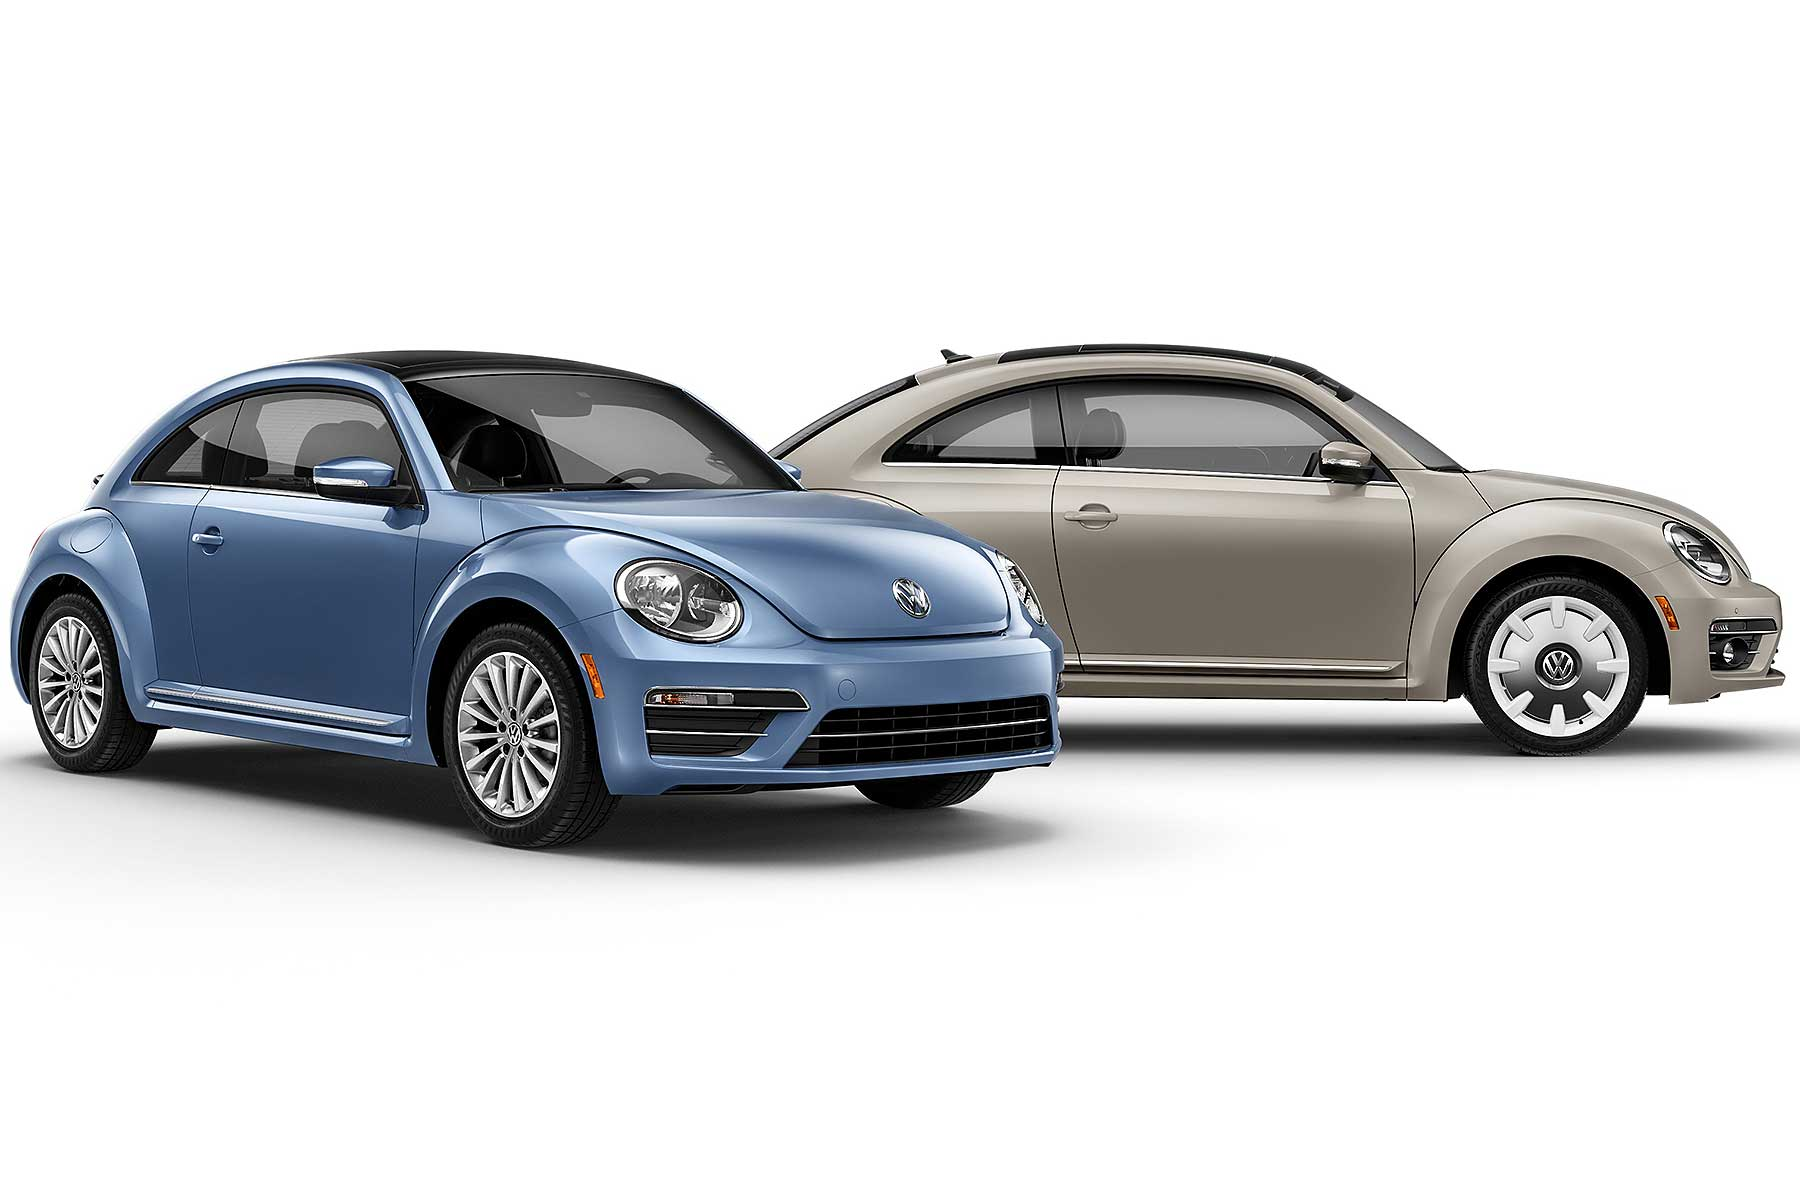 Volkswagen Beetle Final Edition